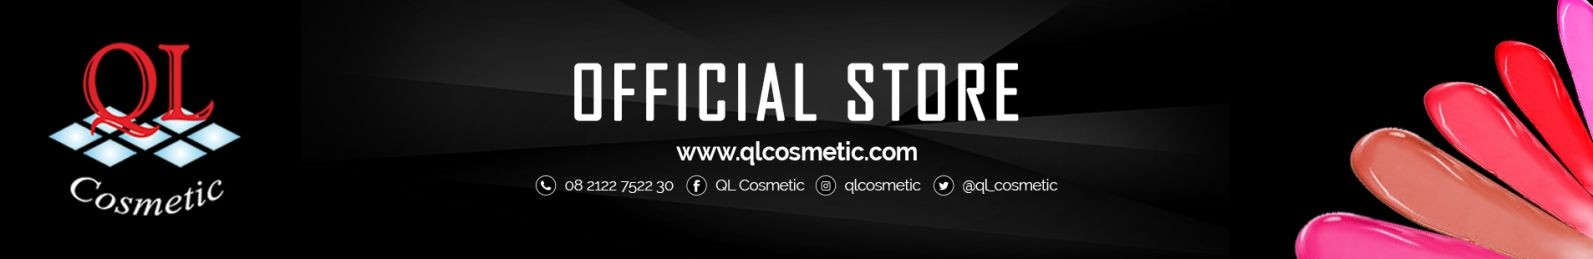 QL Cosmetic Official